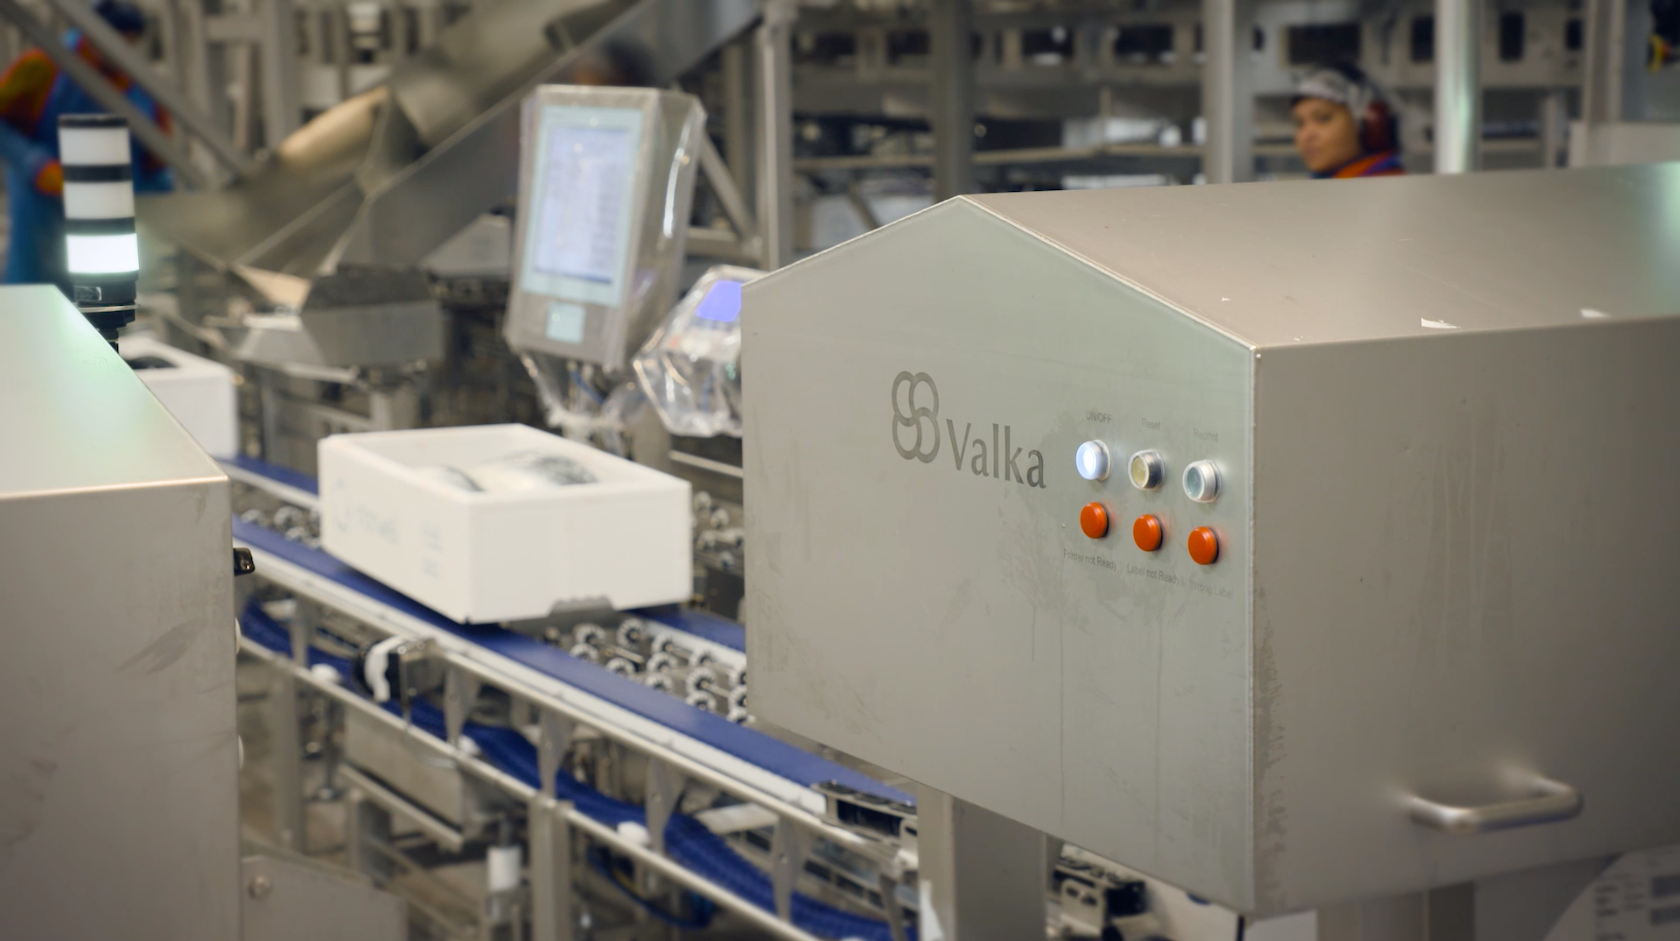 Valka salmon processing solutions are optimising operations around the world